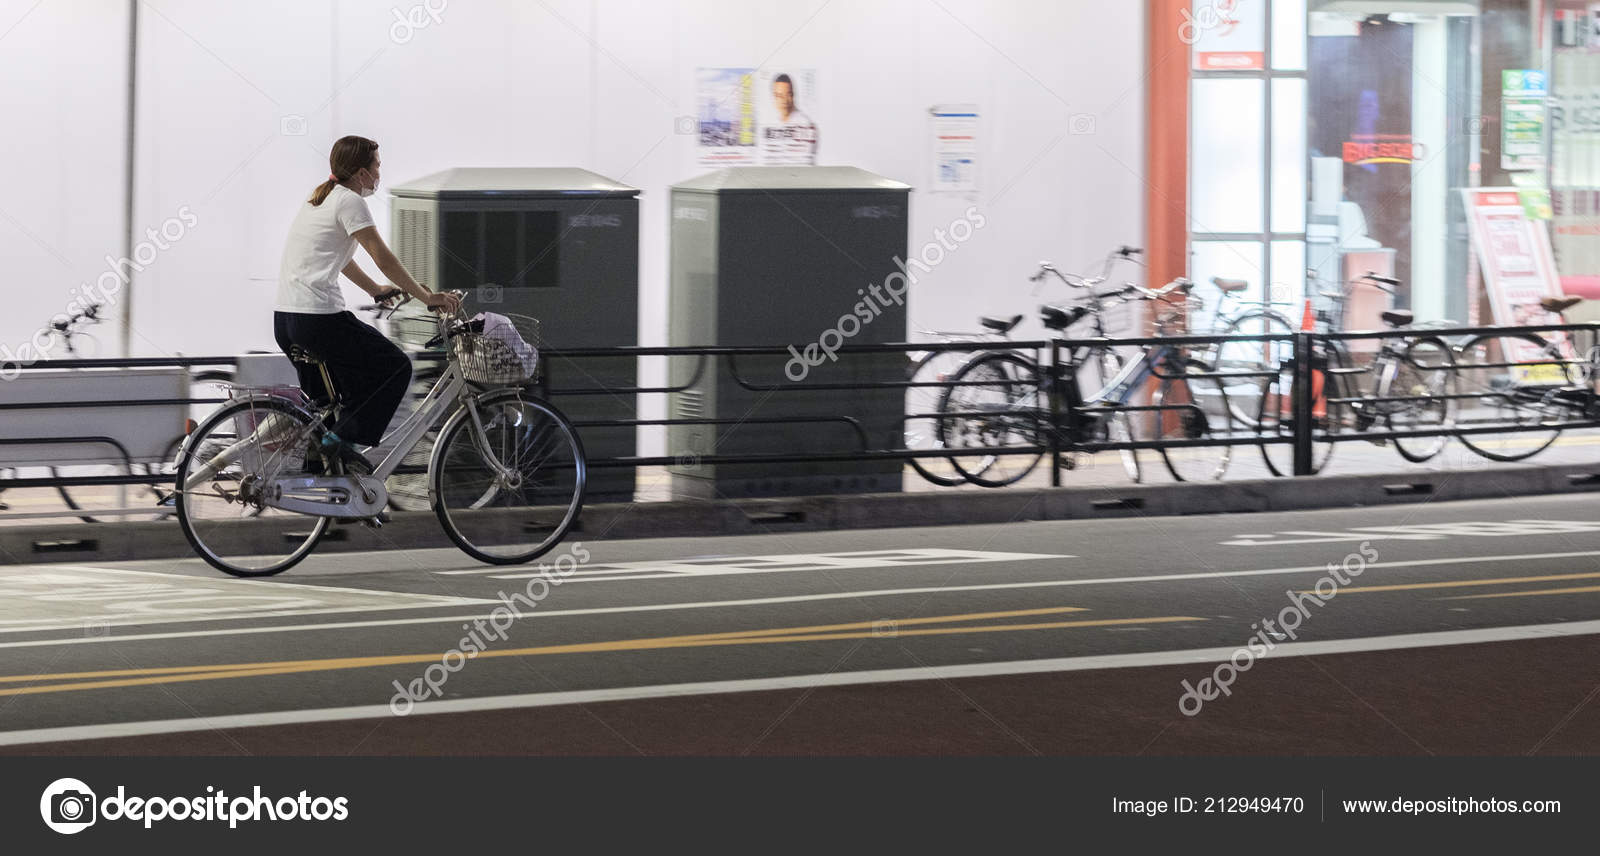 Tokyo Japan August 3rd 2018 Female Japanese Riding Bicyhcle